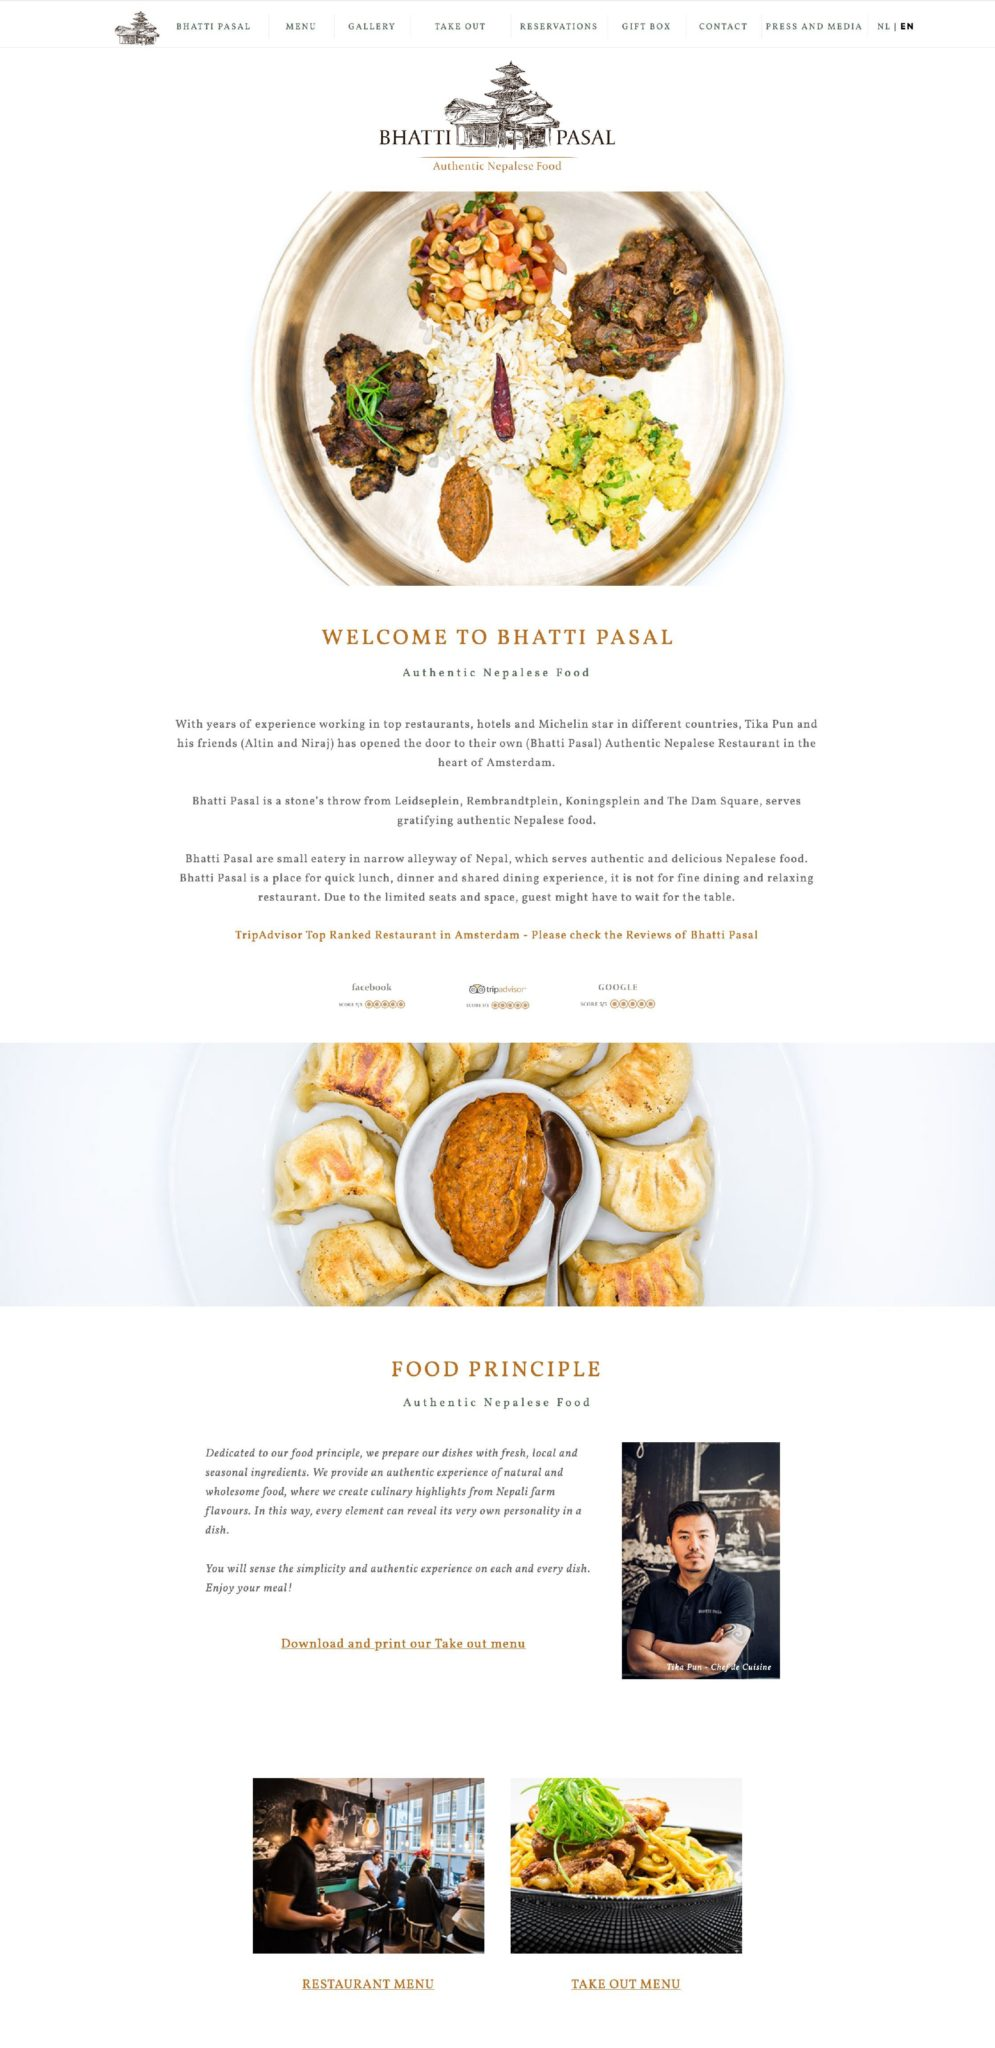 Bhatti Pasal Restaurant Amsterdam Webdesign Idea July 2020